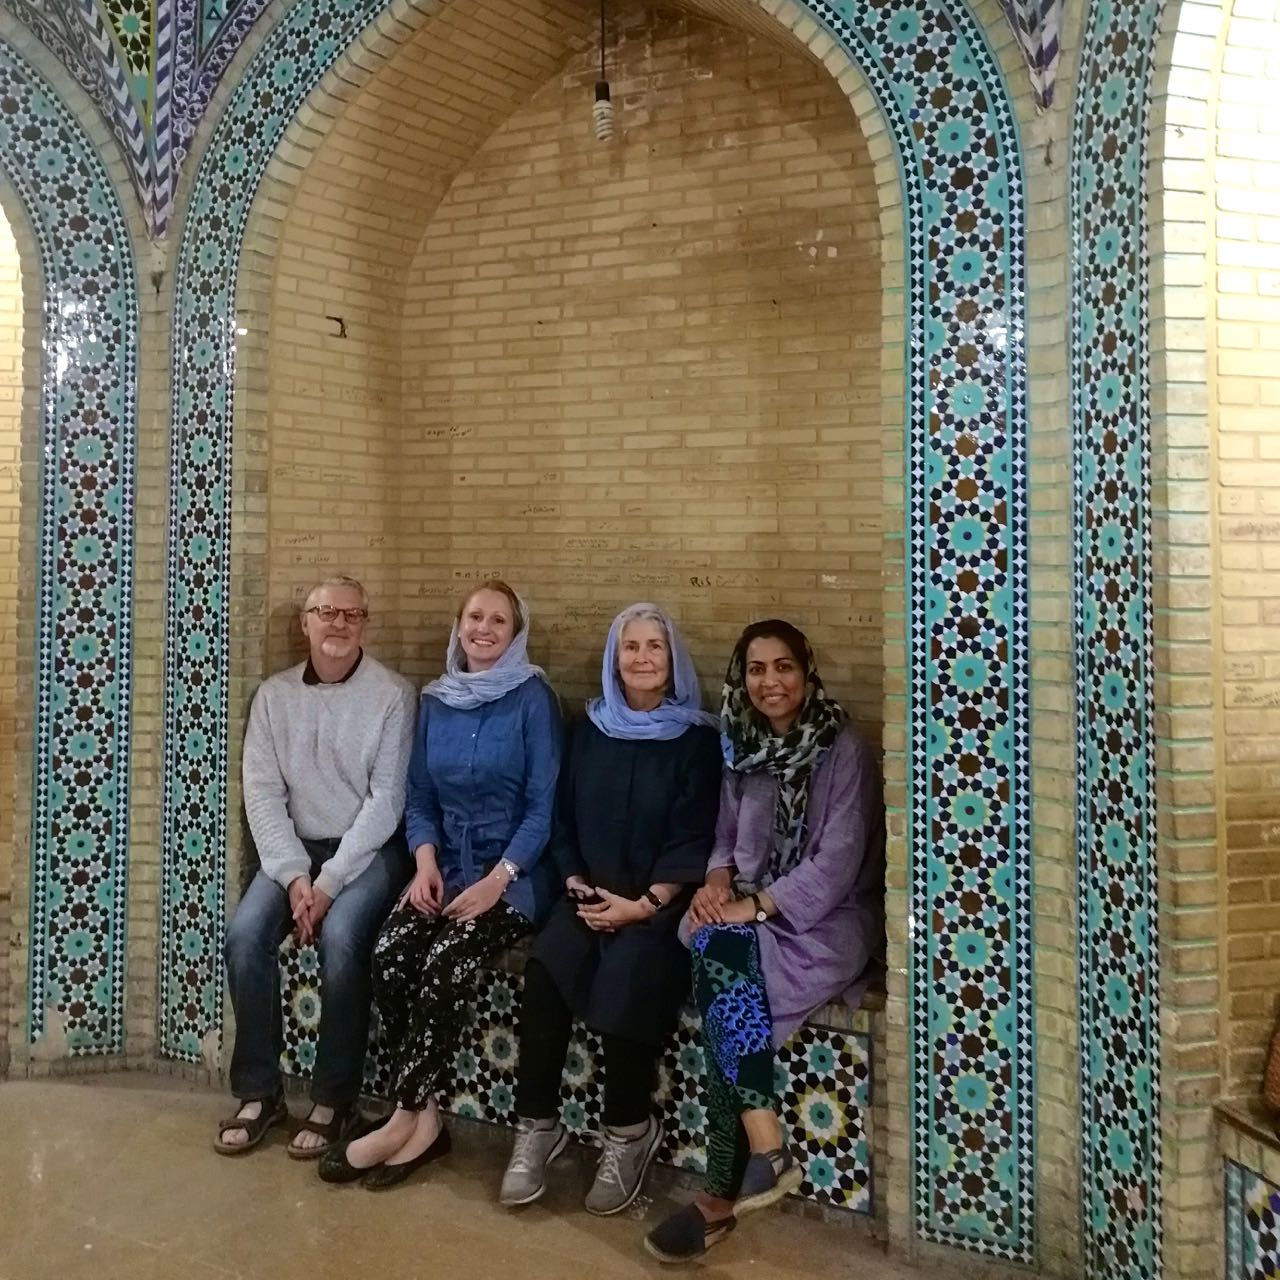 Iran-Shiraz-Sa'adi-mausoleum-tourists.jpg